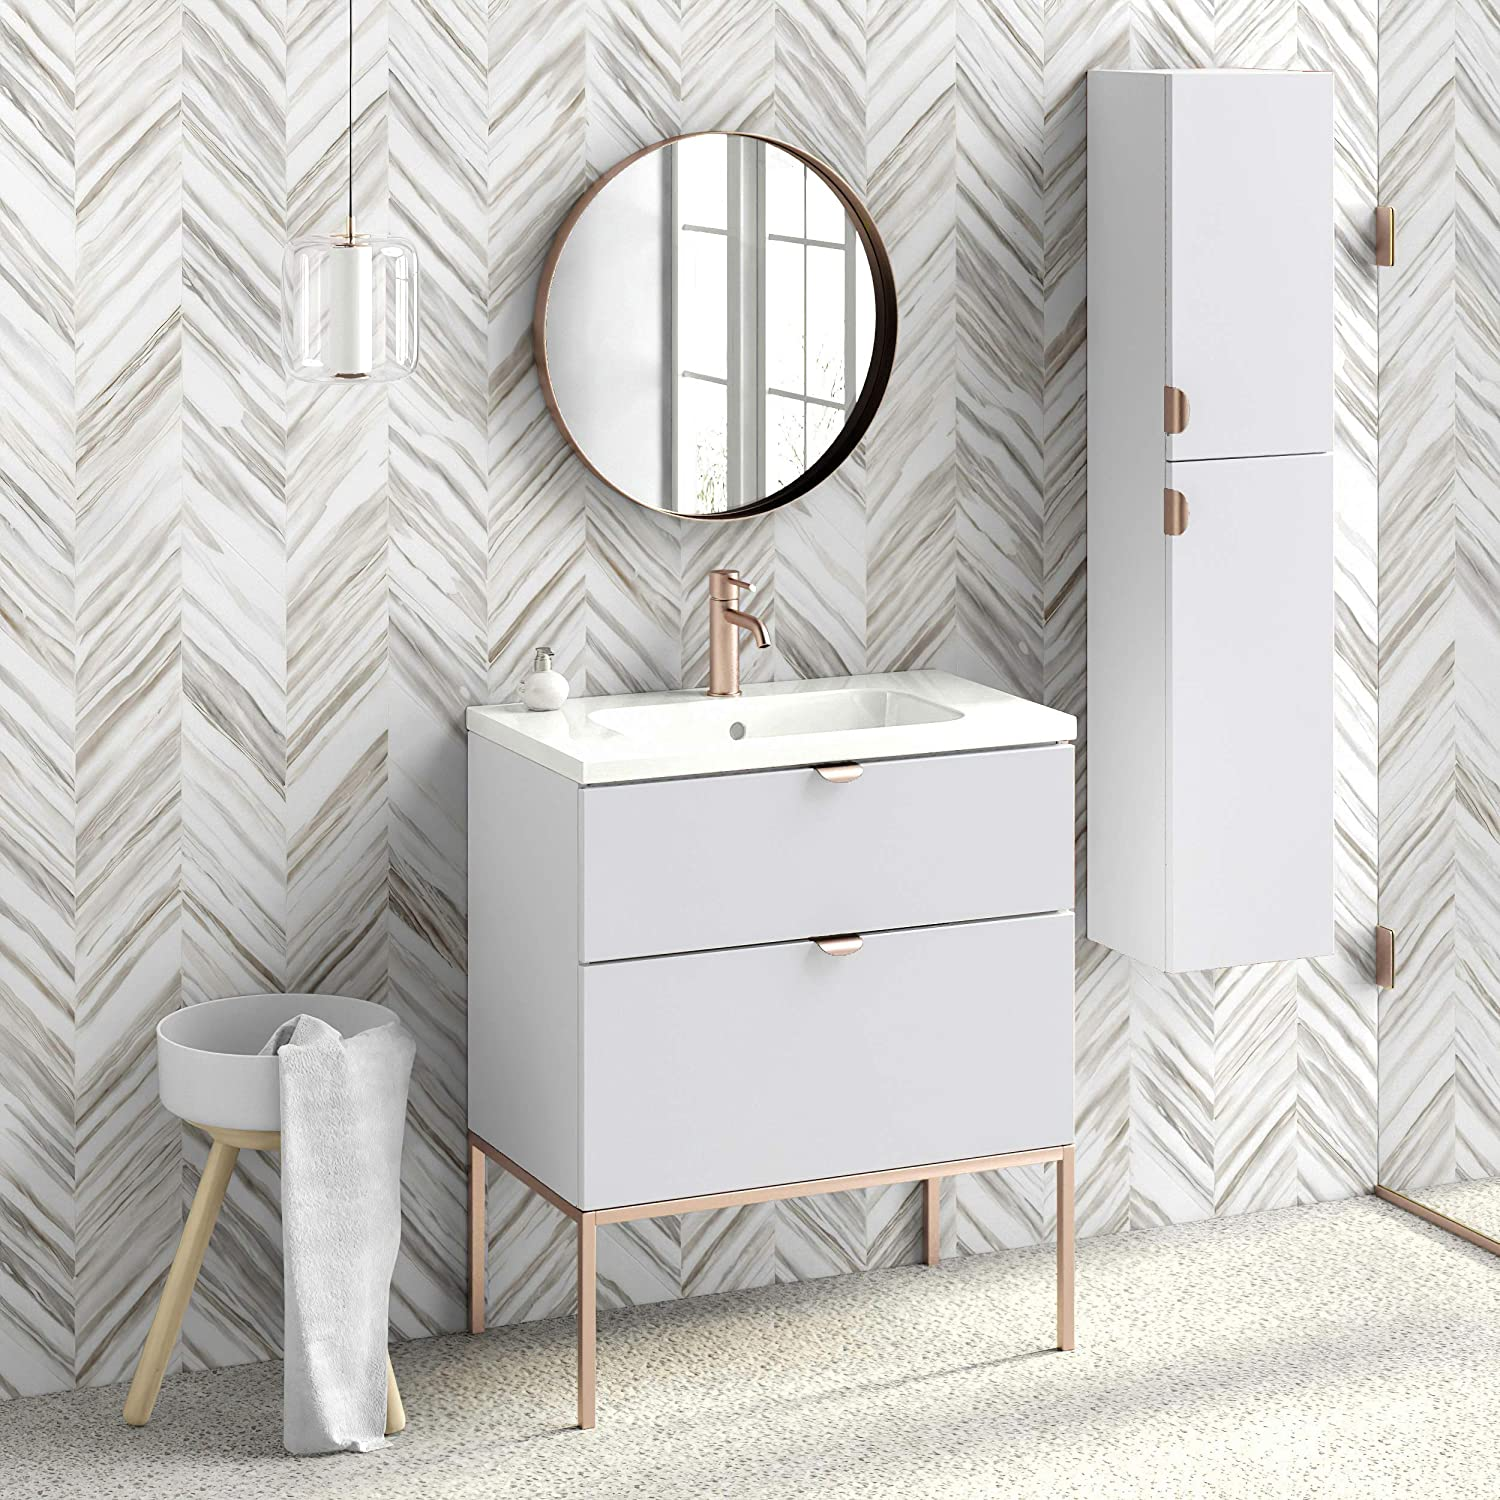 Amazon Com Aspen 32 Bathroom Vanity Cabinet And Sink 32 X35 X18 White Rose Gold Kitchen Dining